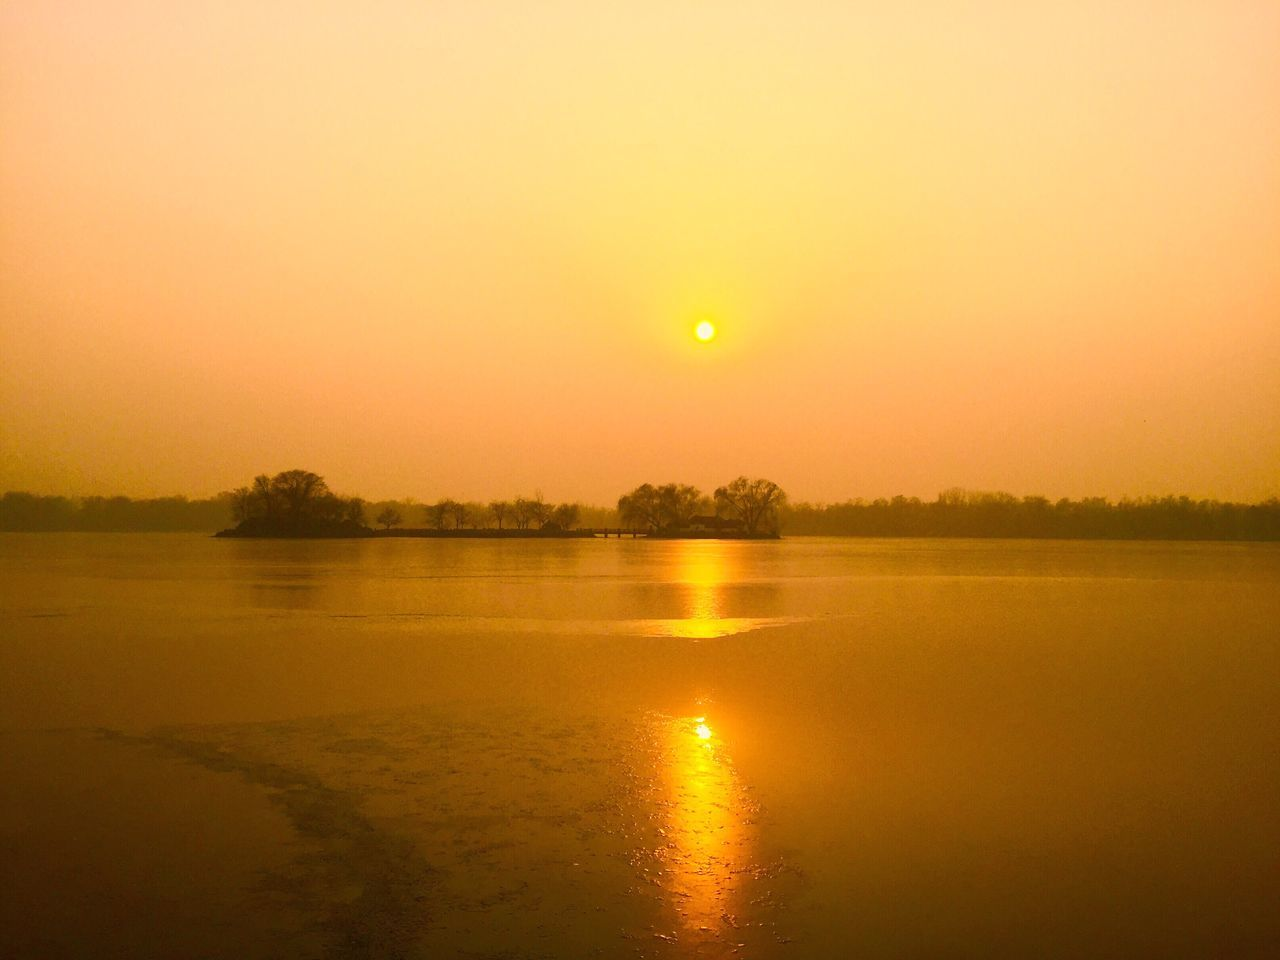 sunset, reflection, nature, sun, tranquil scene, orange color, water, beauty in nature, scenics, tranquility, no people, sky, tree, outdoors, clear sky, day